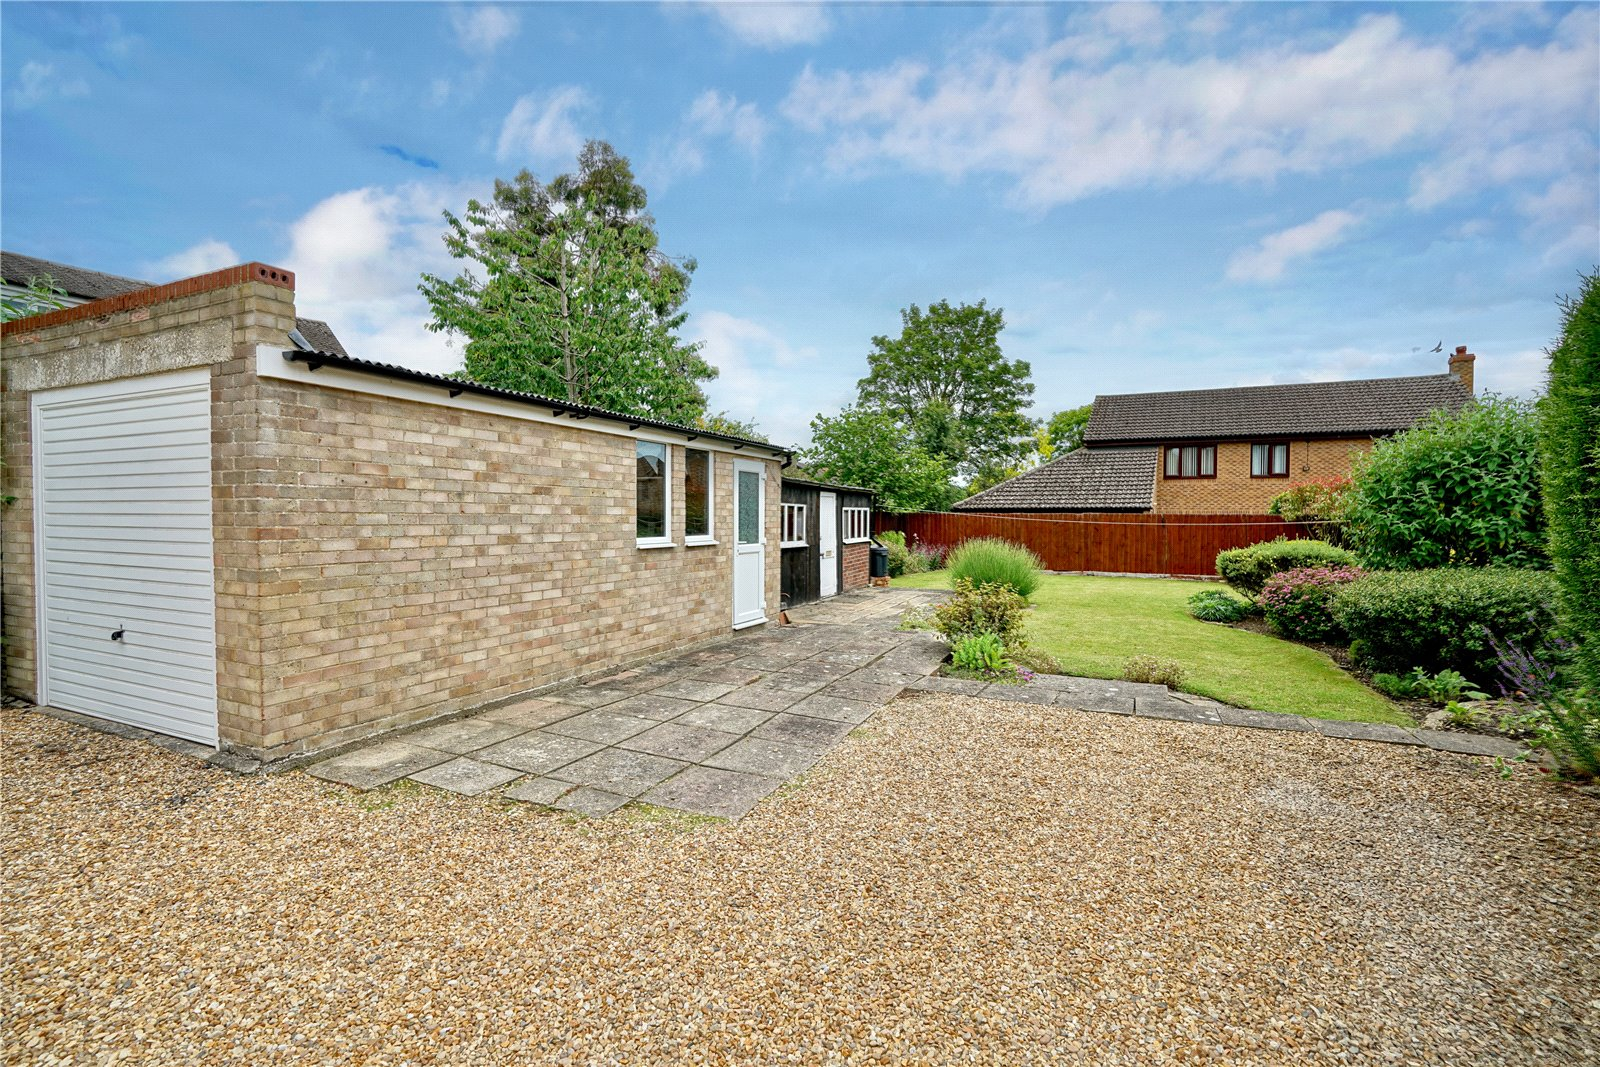 3 bed house for sale in Great North Road, Eaton Socon 7